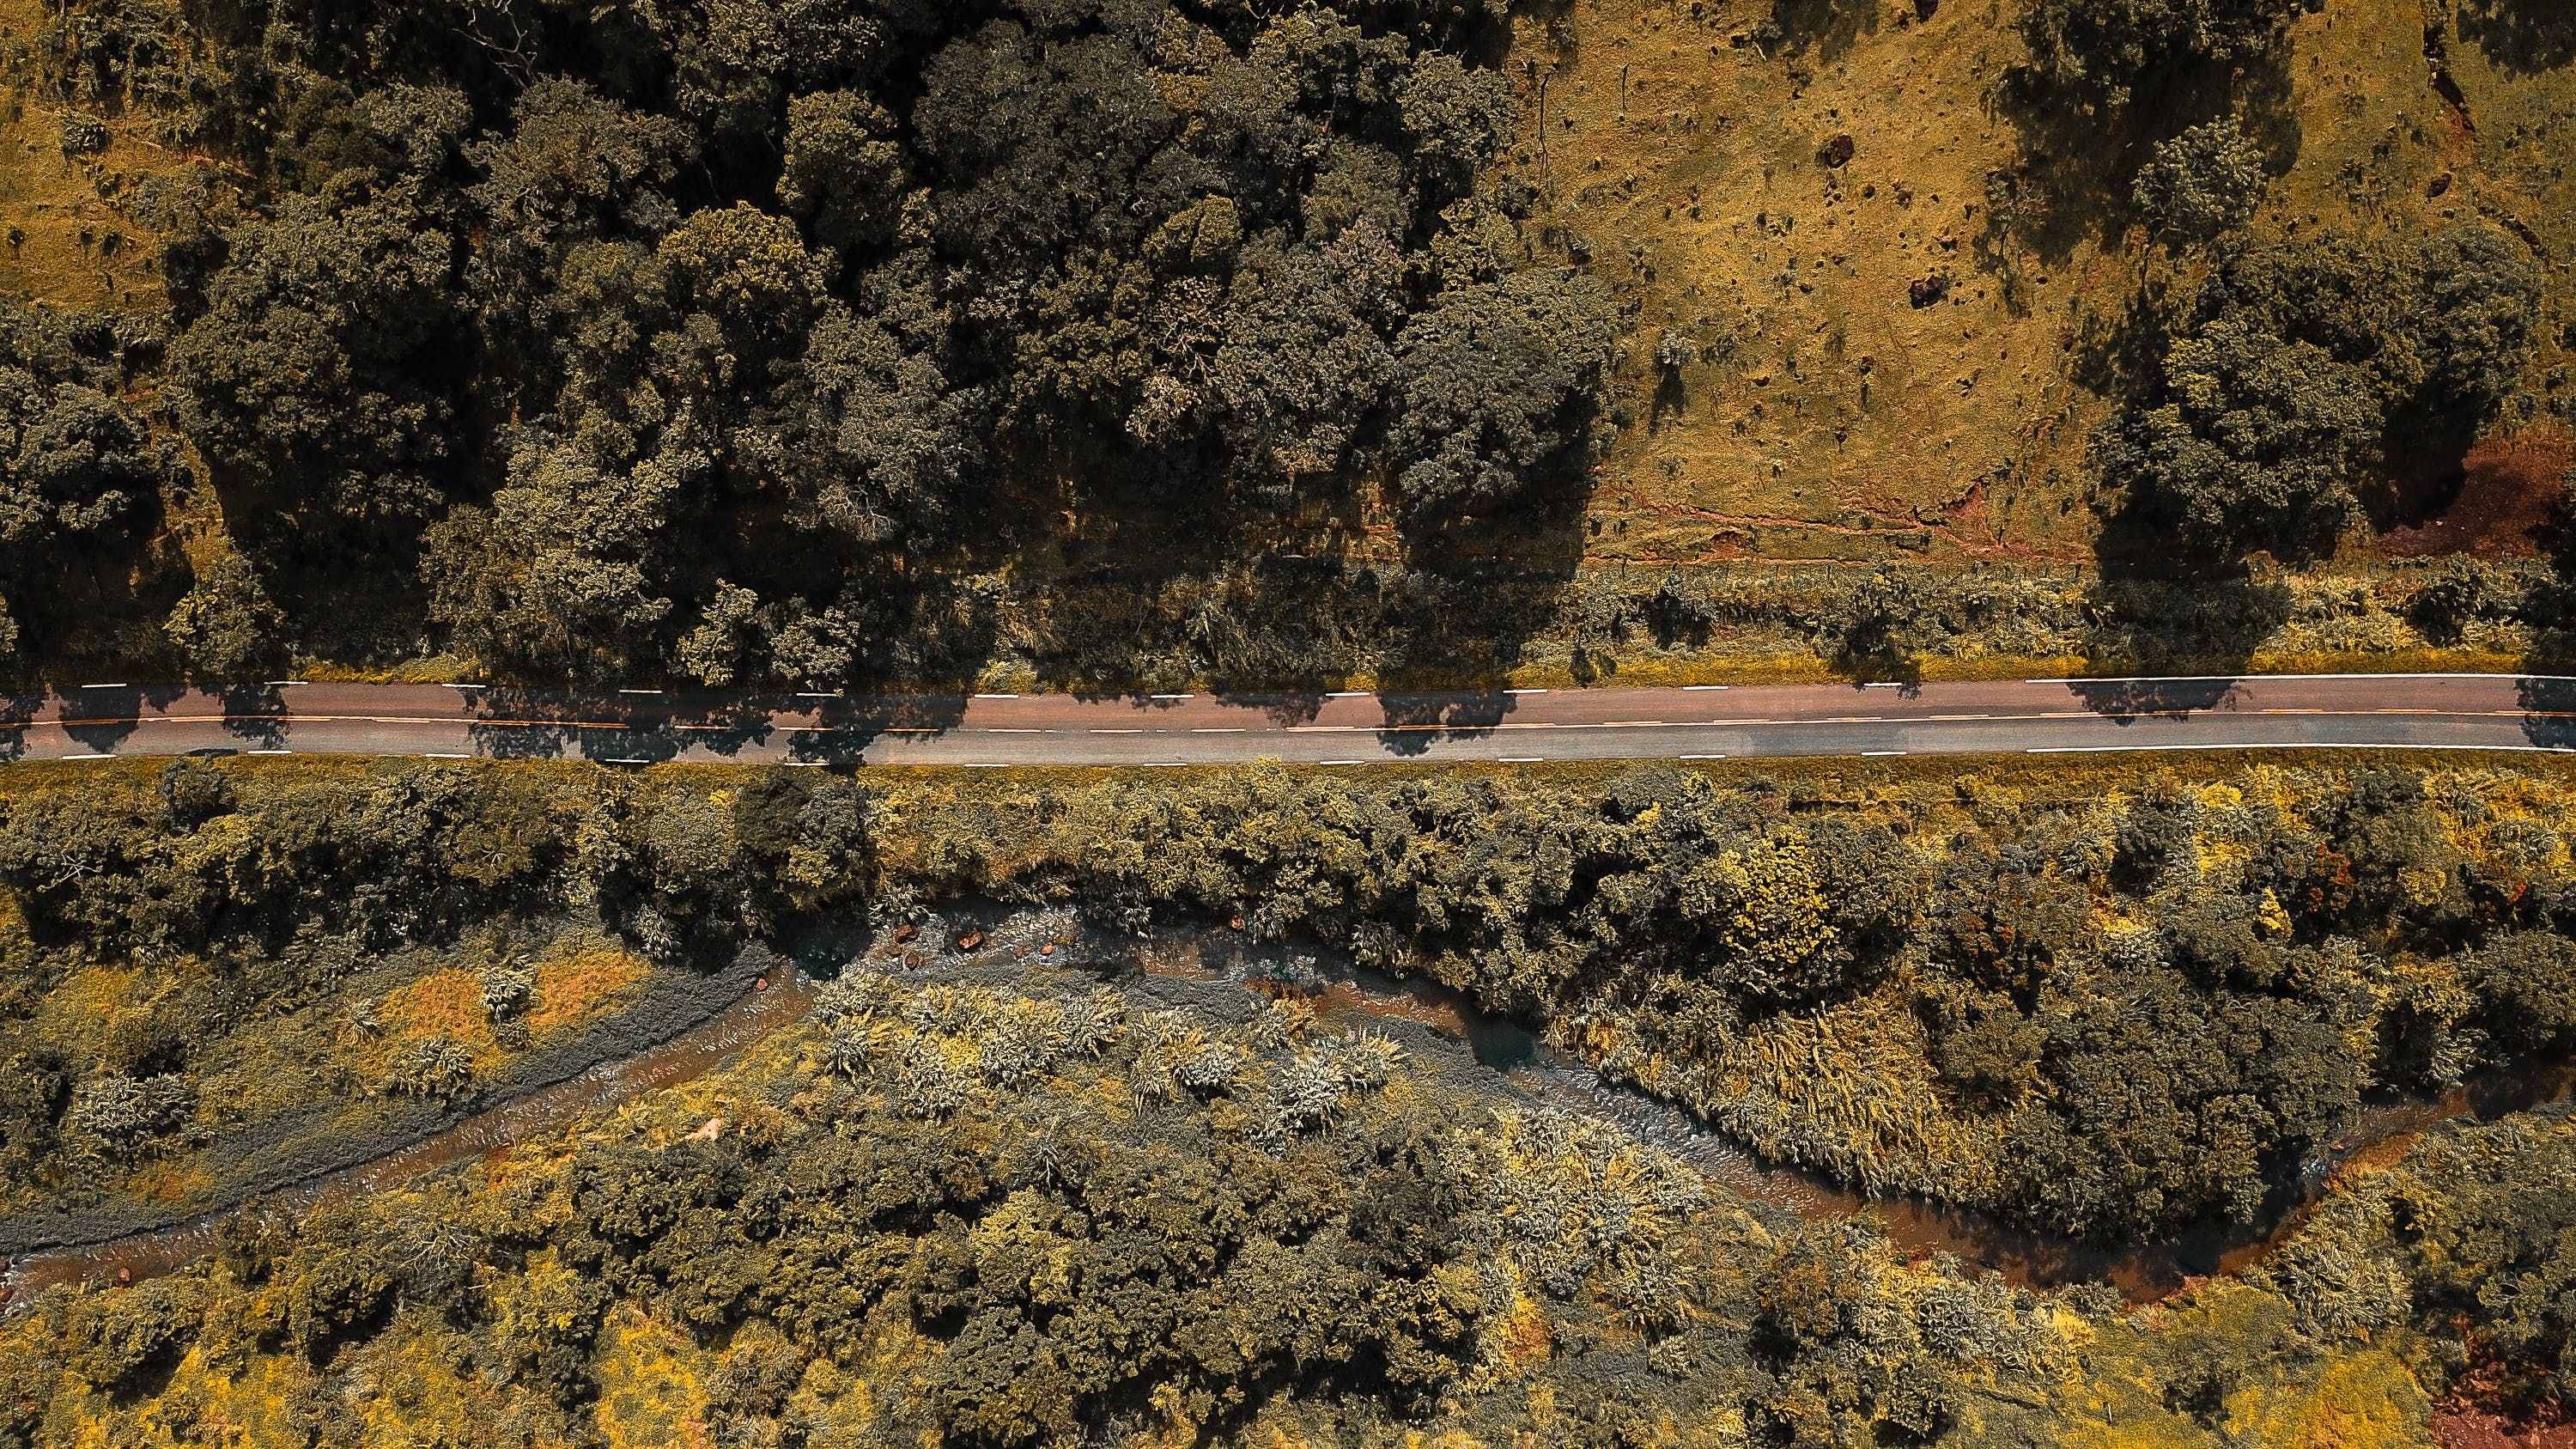 Bird's Eye View Of Road Surrounded By Trees